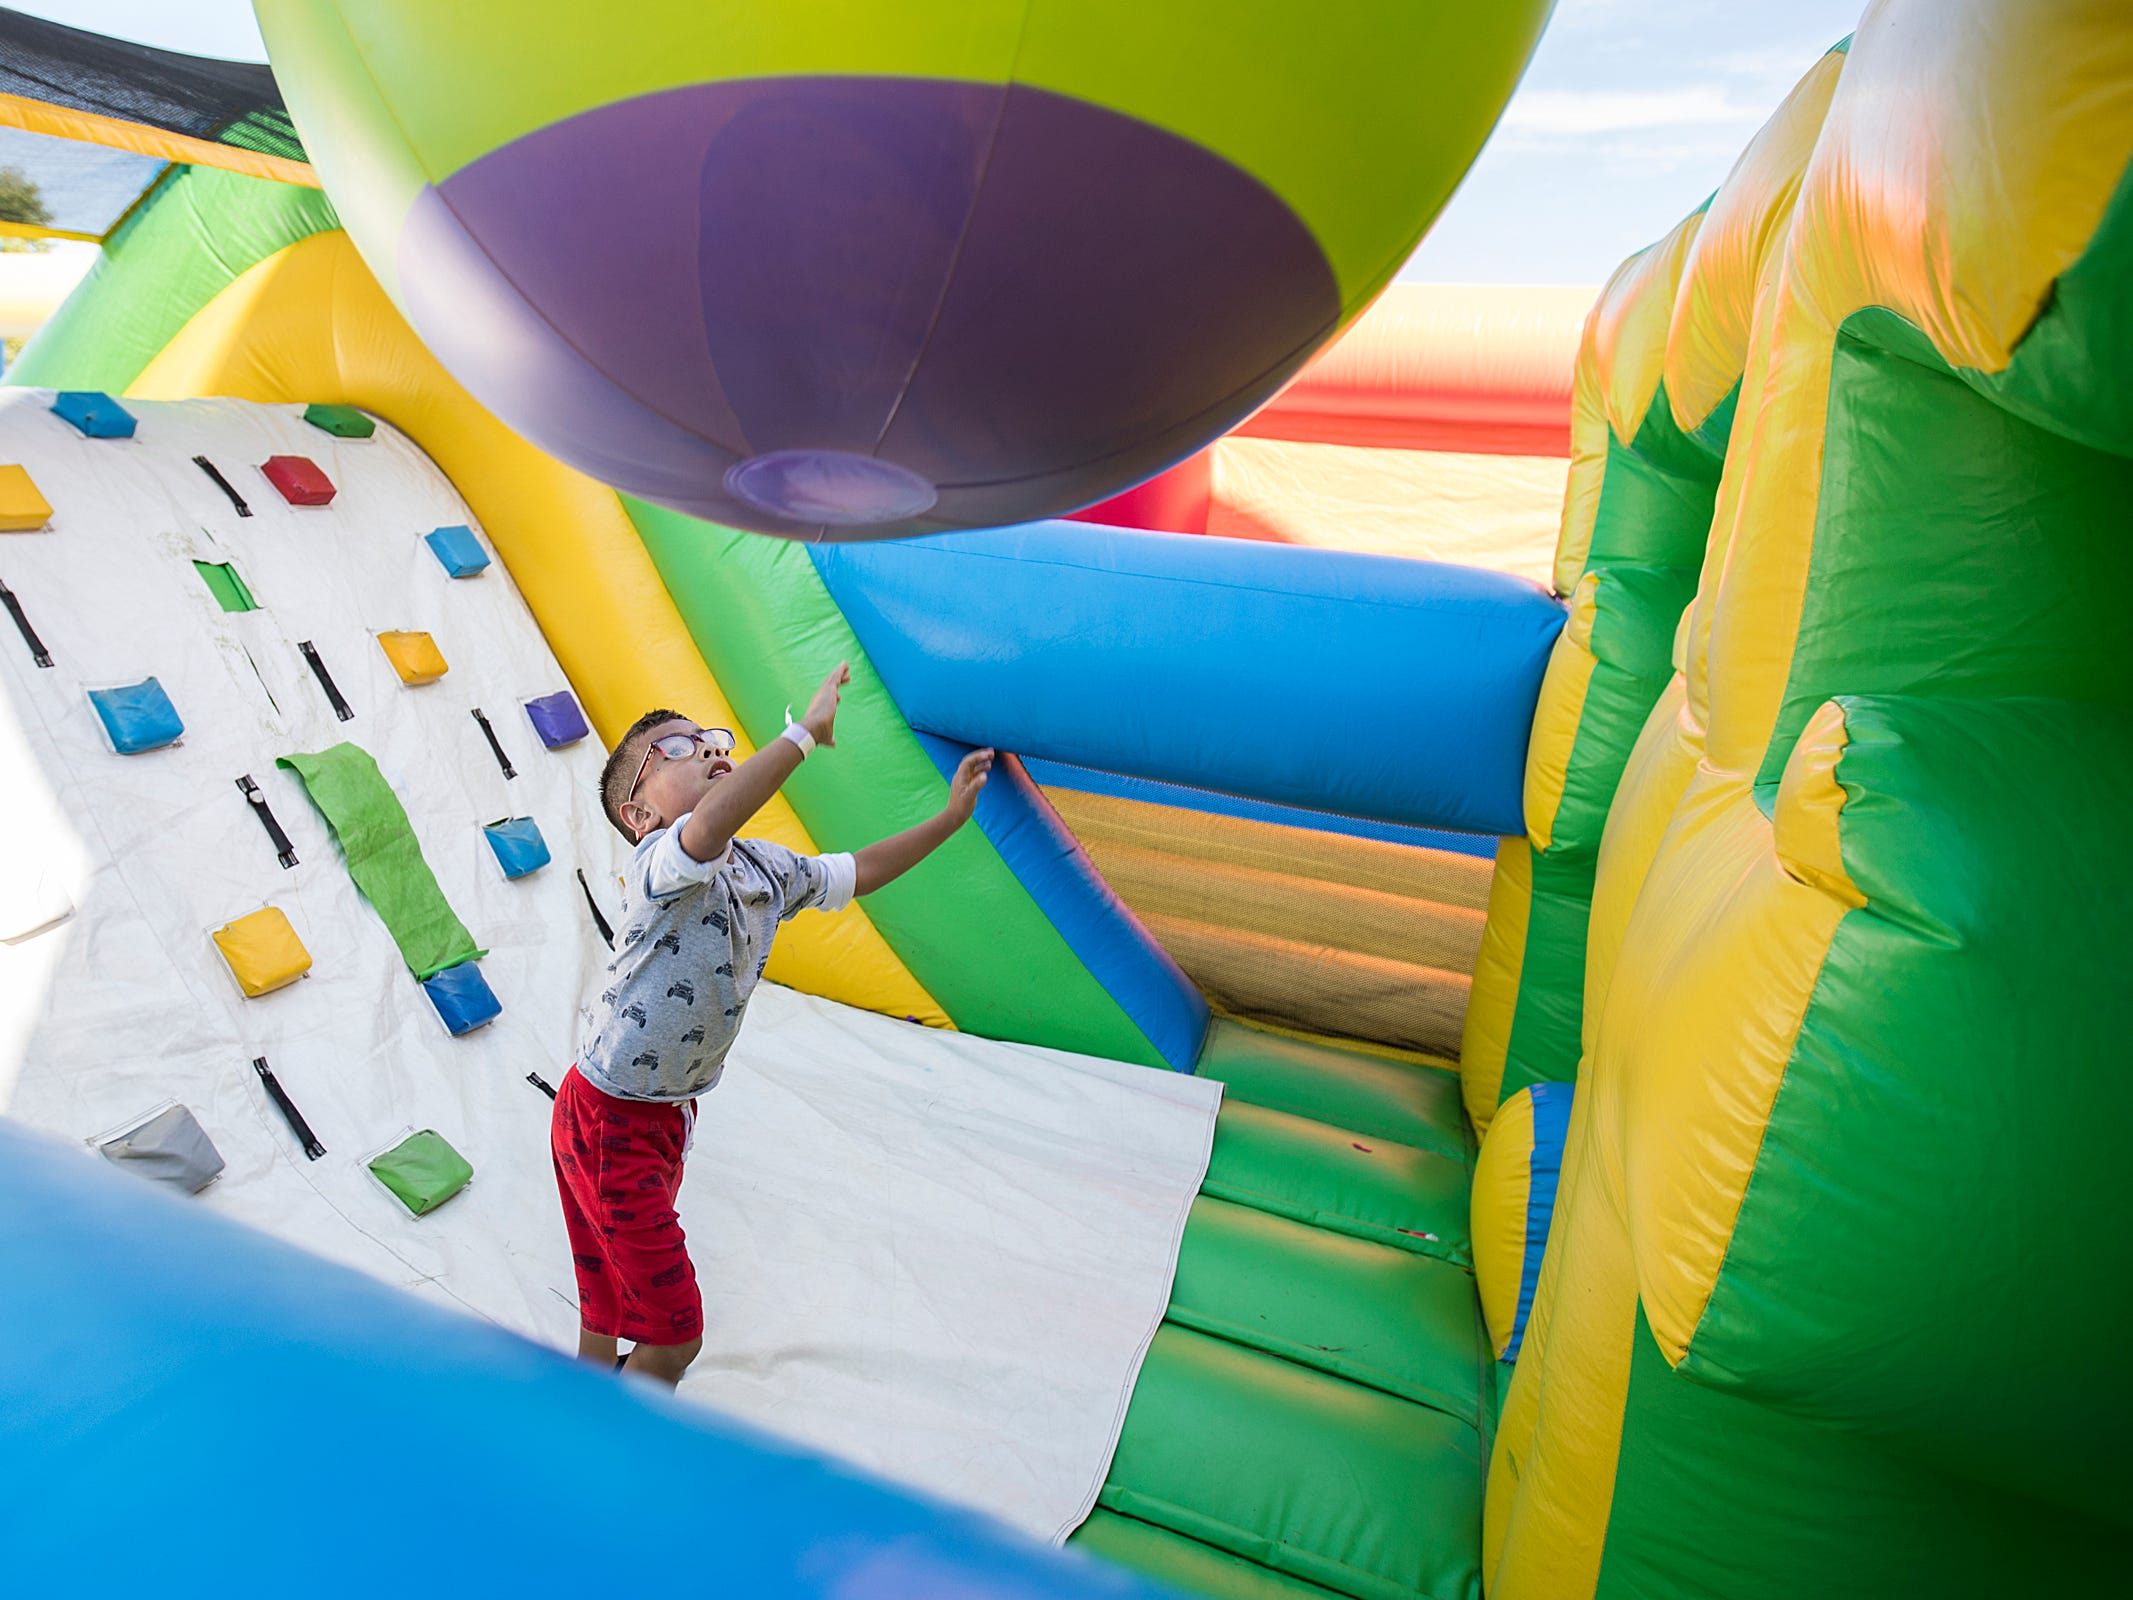 Kids and parents play in the Big Bounce America inflatable attraction at Waterman's Family Farm in Indianapolis, Friday, Sept. 14, 2018. The world's largest bounce house covers 10,000 square feet and will be in Indy though September 16.